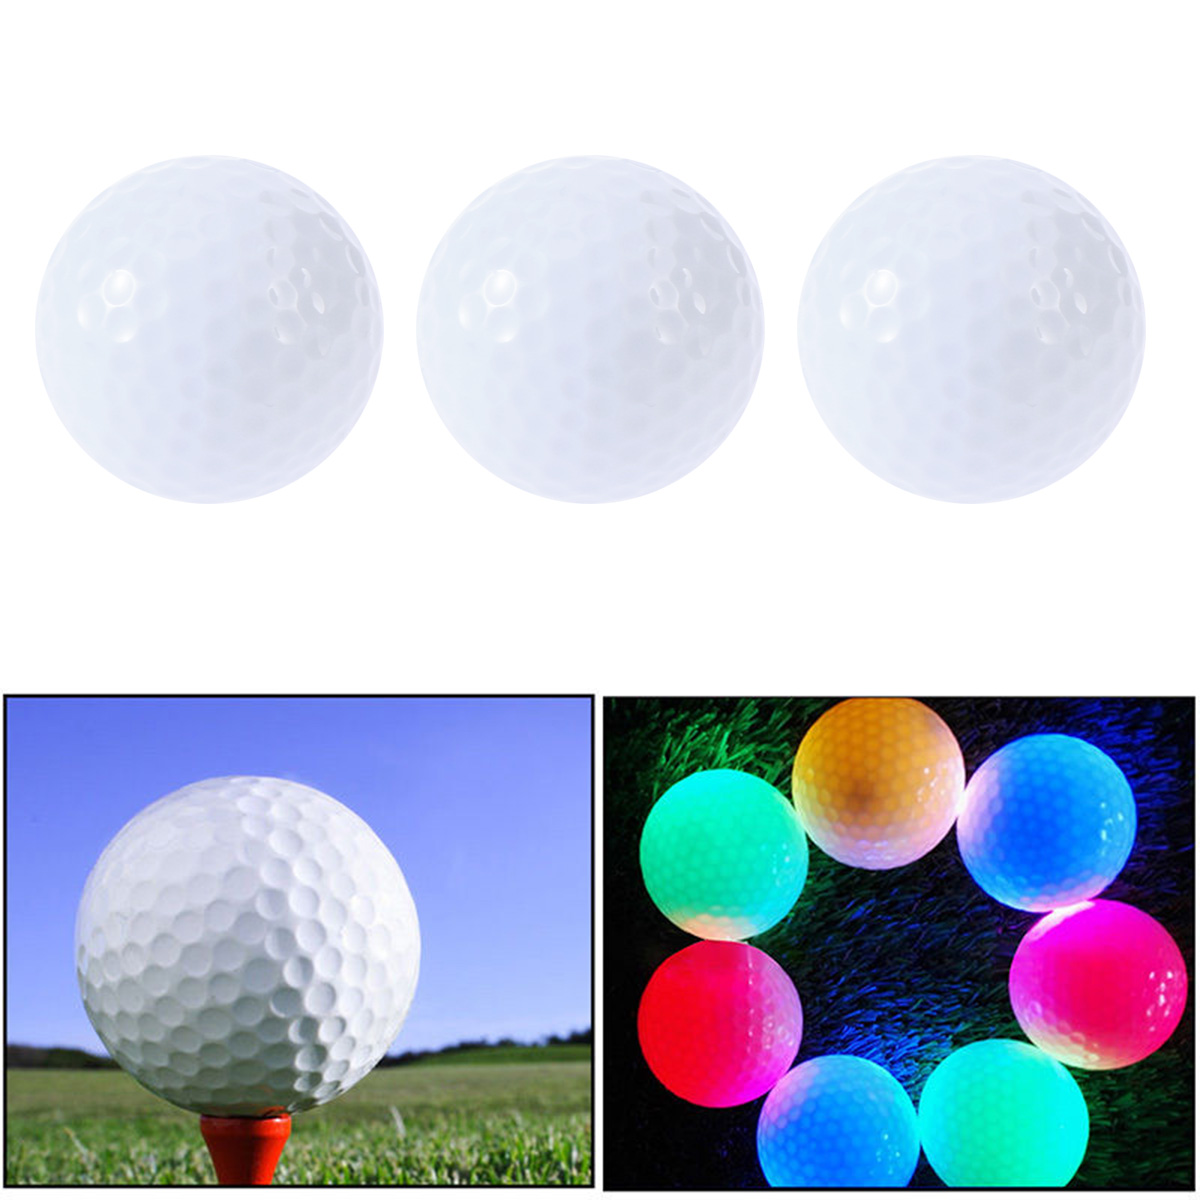 3 Pcs Luminous Night Golf Balls LED Light Up Golf Balls Glow In The Dark Bright Long Lasting Reusable Night Golf Ball